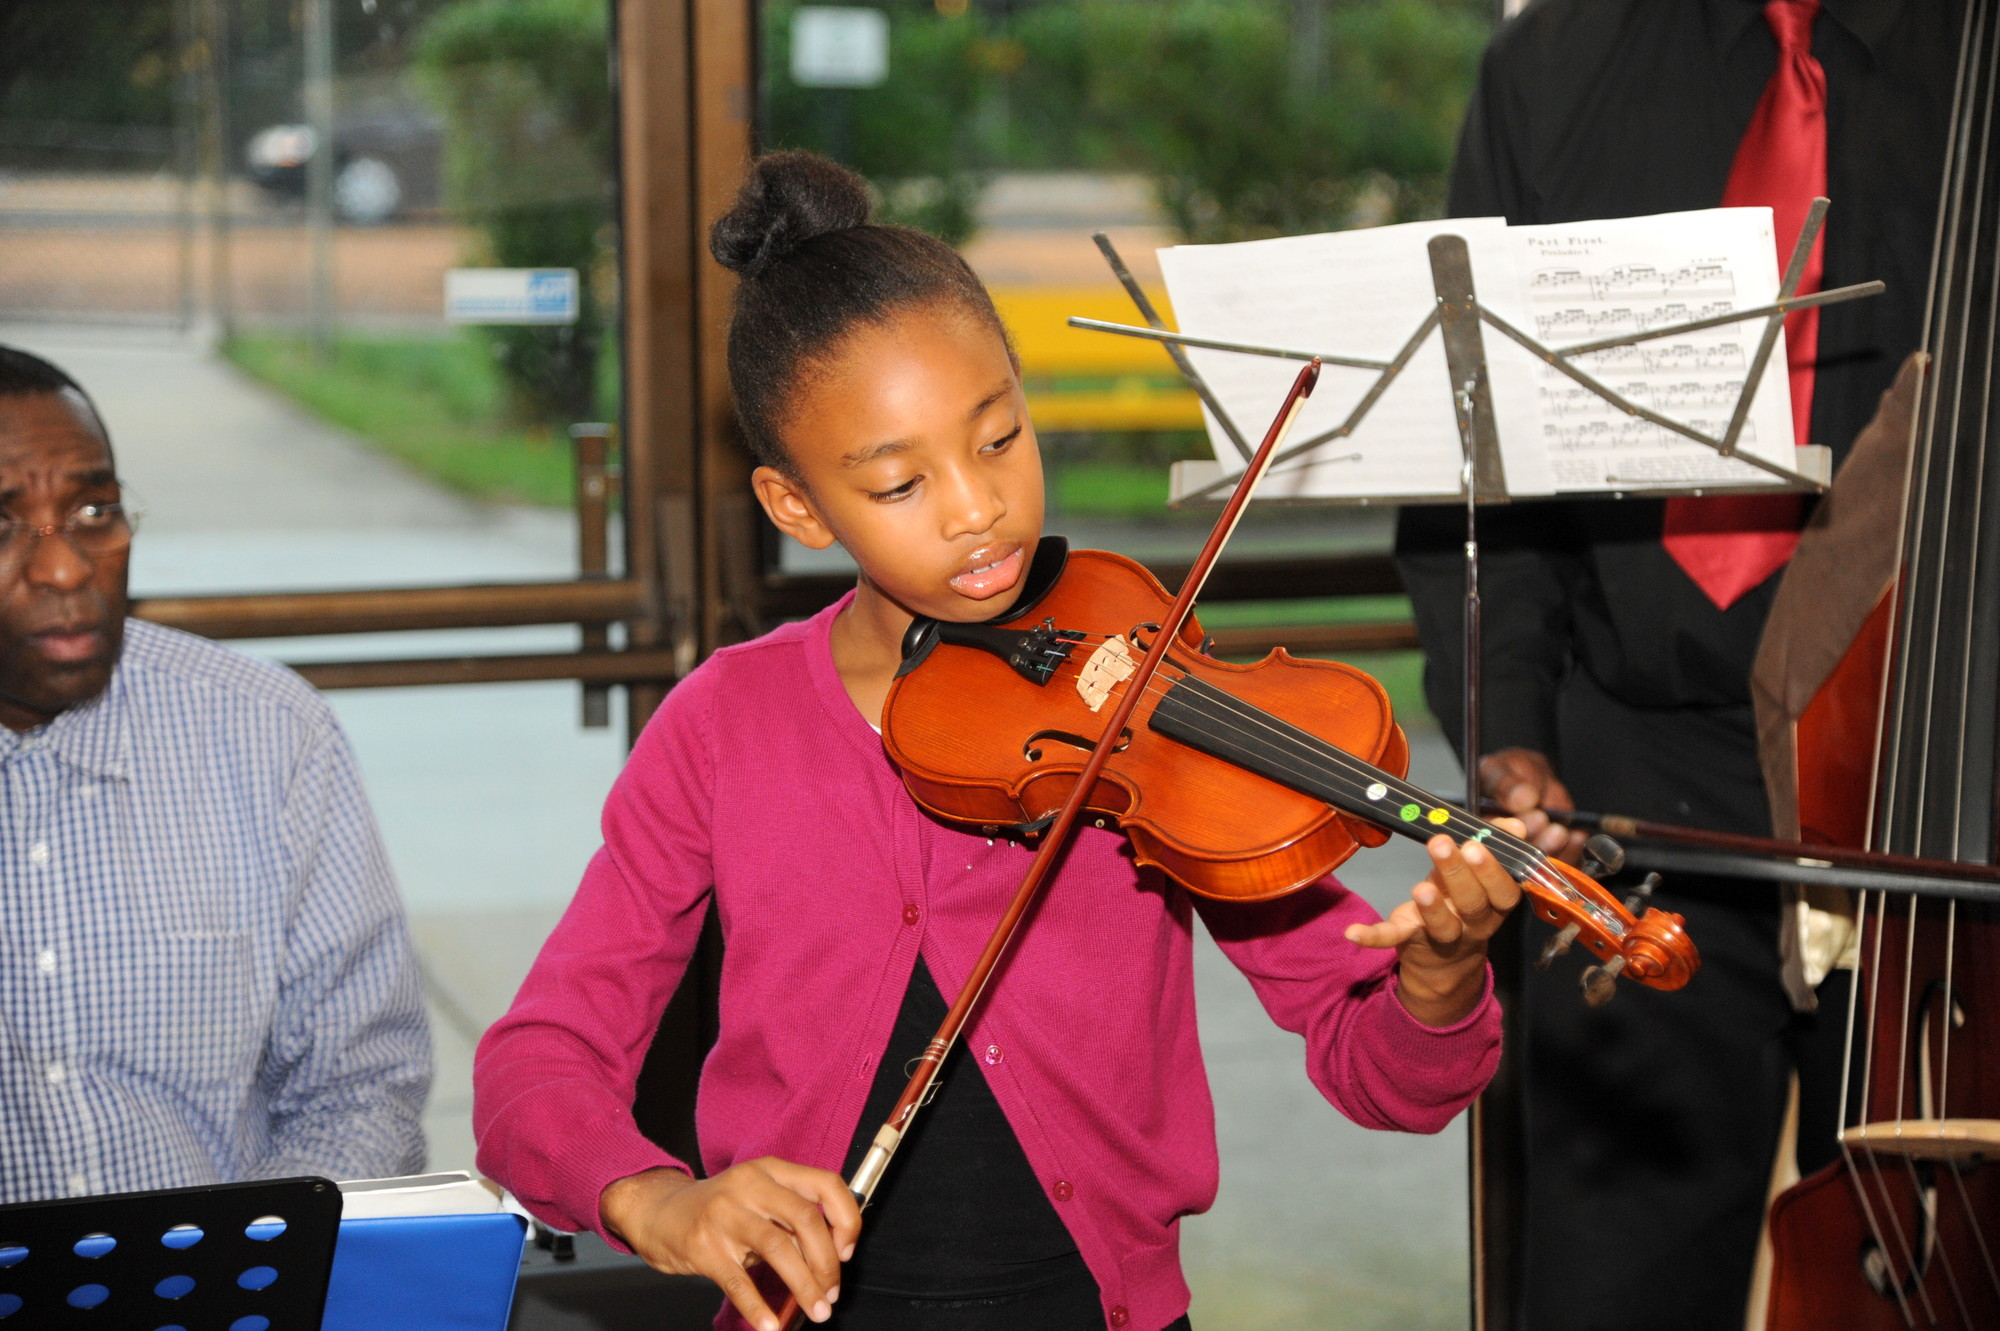 Brielle Mya Banks, 9, of the KeyNote Music Center, played the violin for the crowd at Juanita Warren